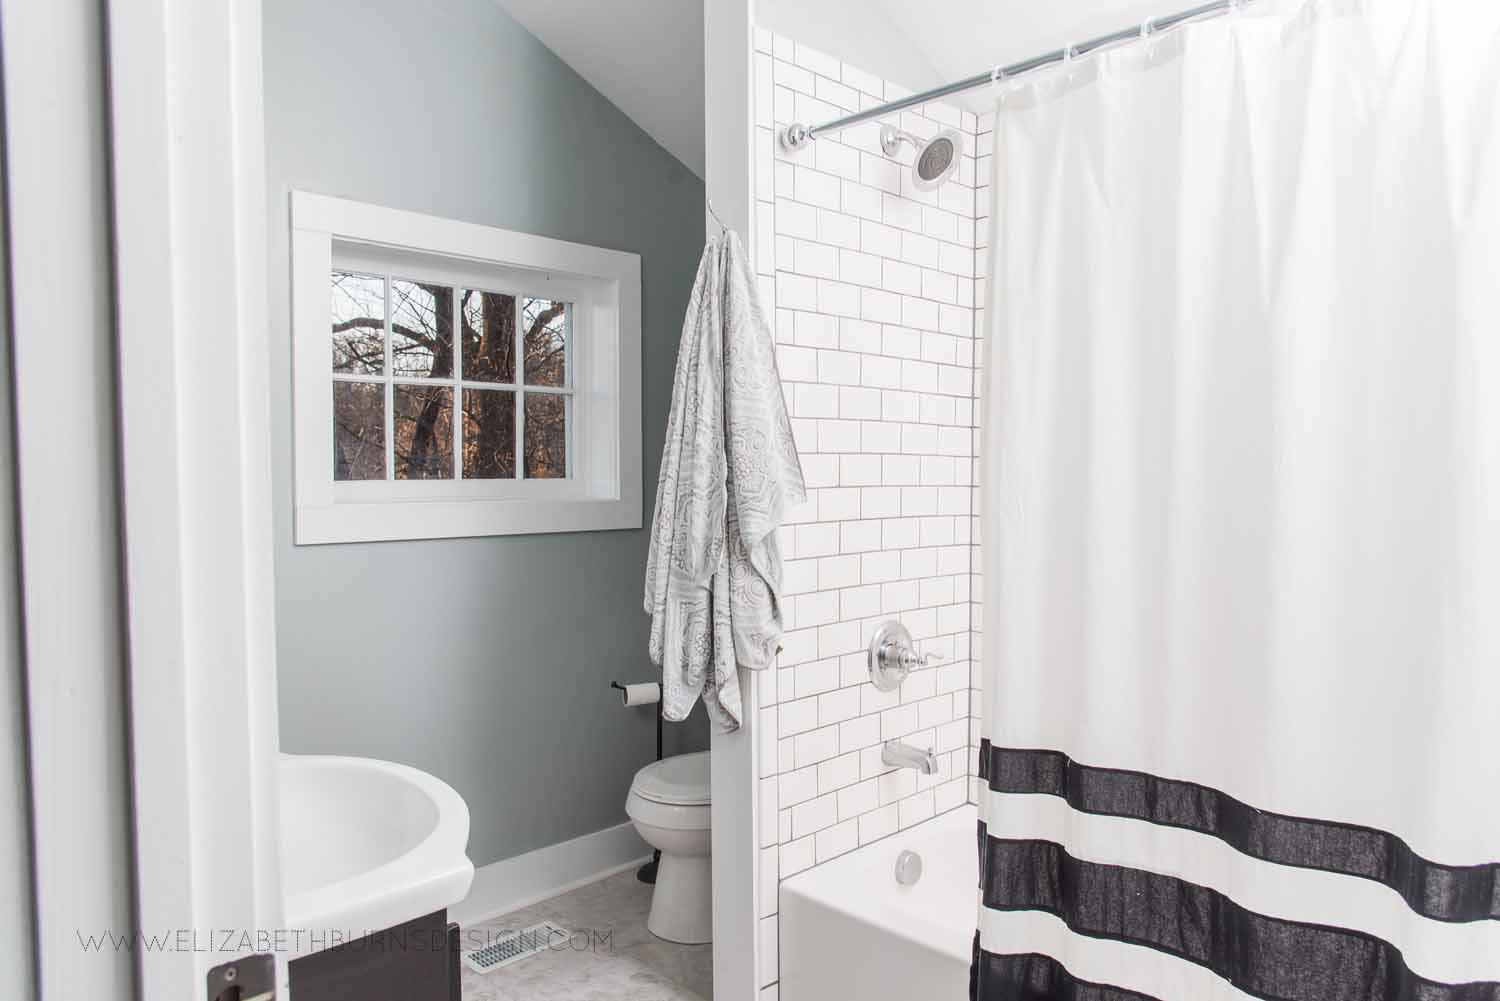 Elizabeth Burns Design Raleigh Interior Designer  Farmhouse Fixer Upper Cottage Renovation, Sherwin Williams Magnetic Gray SW 7058 Small Master Bathroom (2).jpg